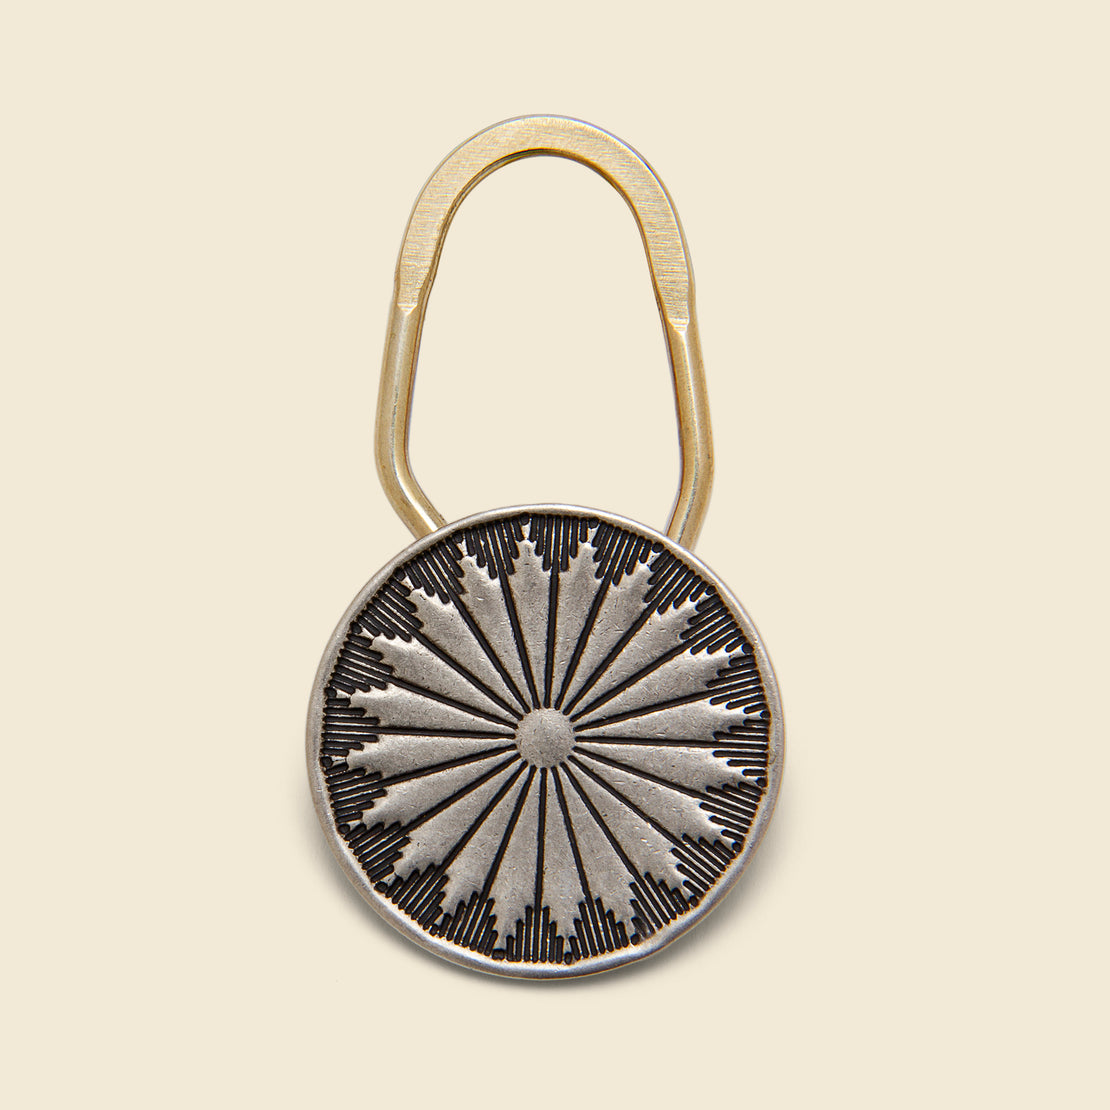 Yuketen Concho Key Chain - Nickel Silver